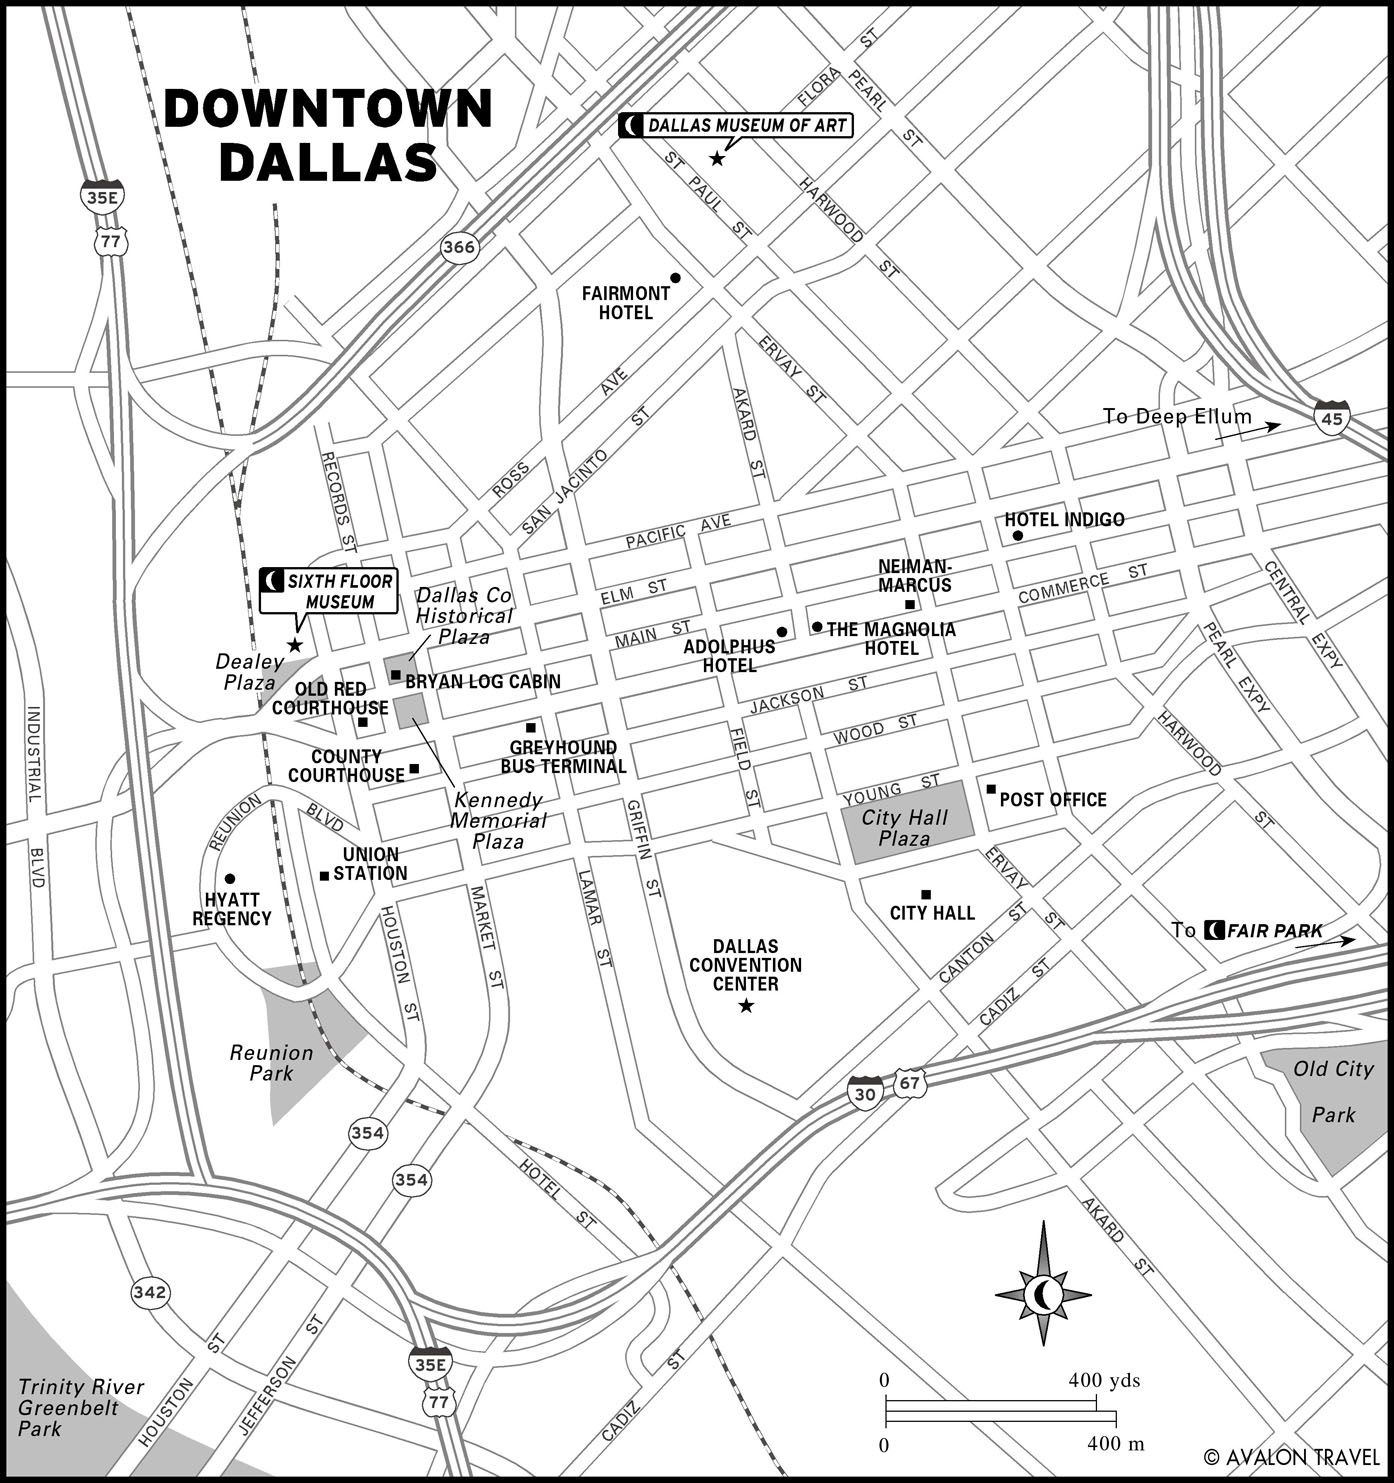 Printable Travel Maps Of The Southwest  Texas Us Travel Maps - Map of houston hotels downtown